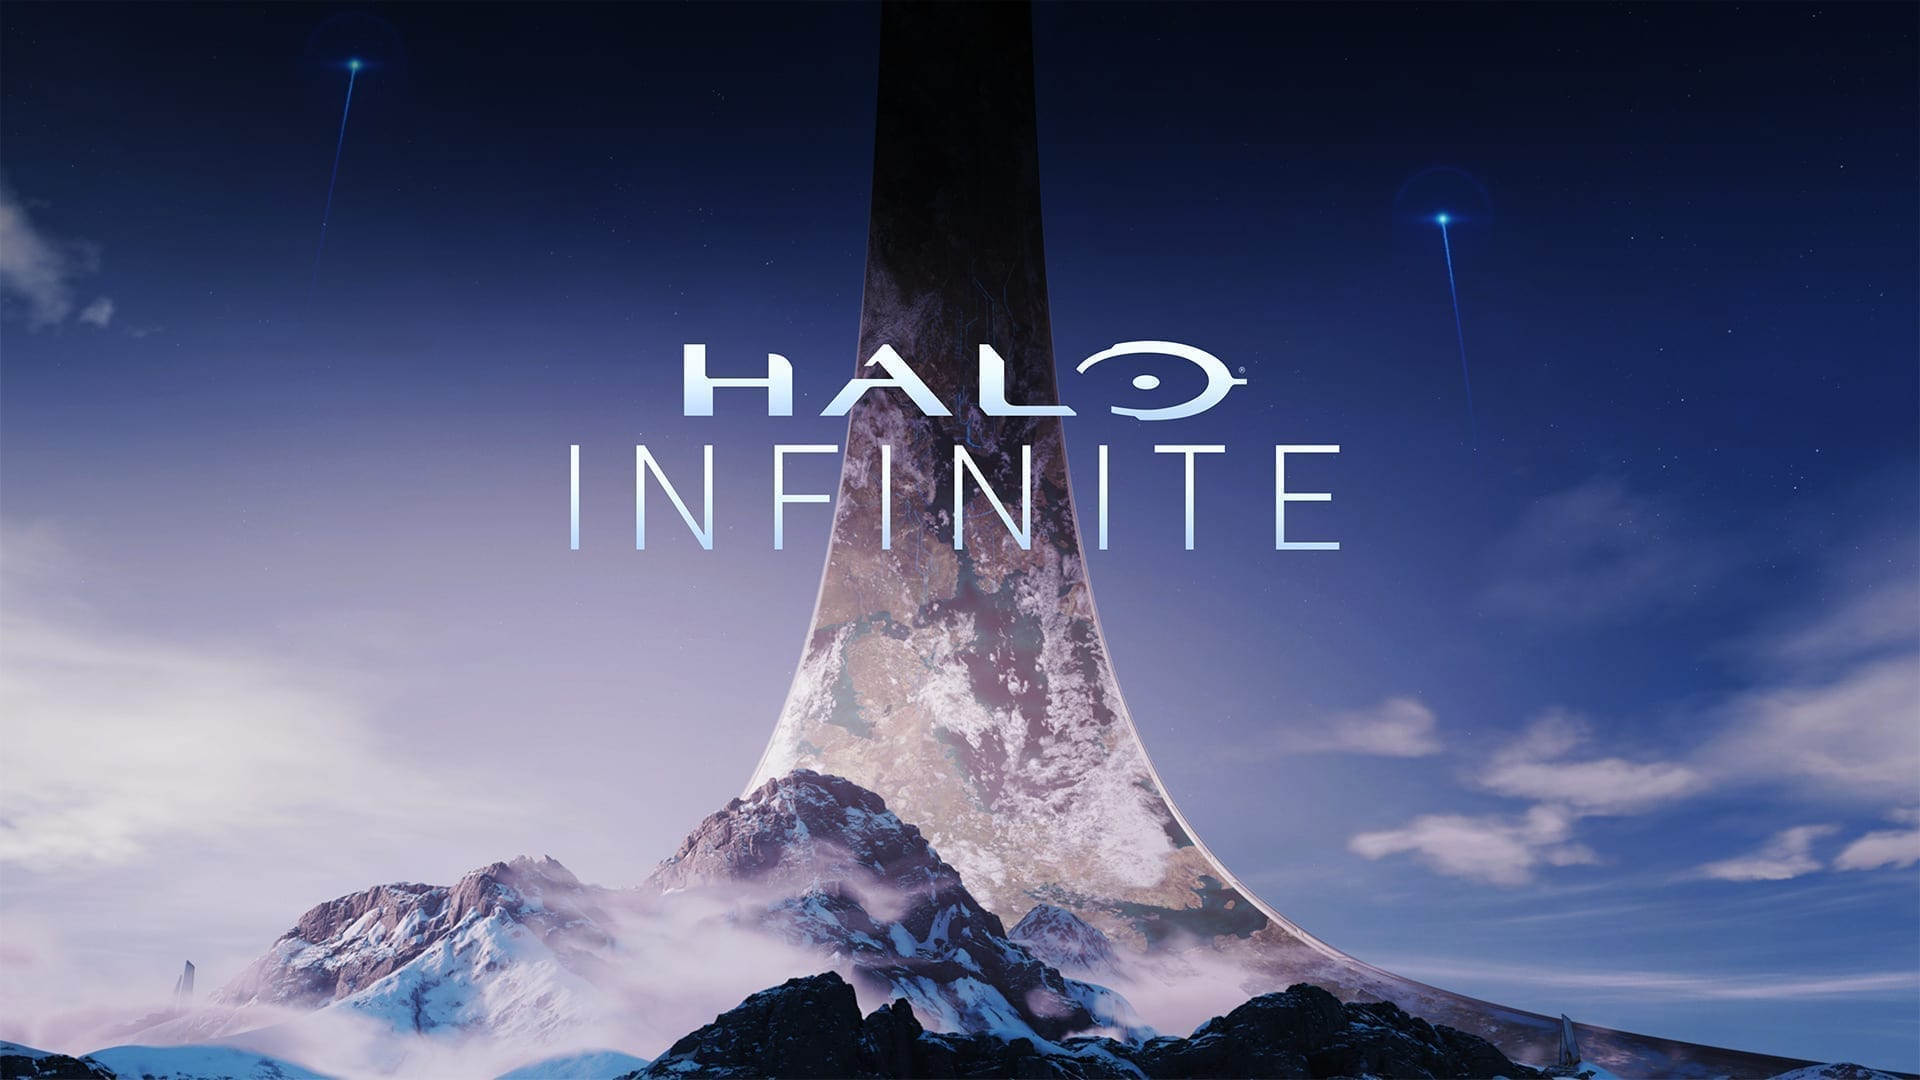 Halo Infinite 'The Banished' Teaser Released